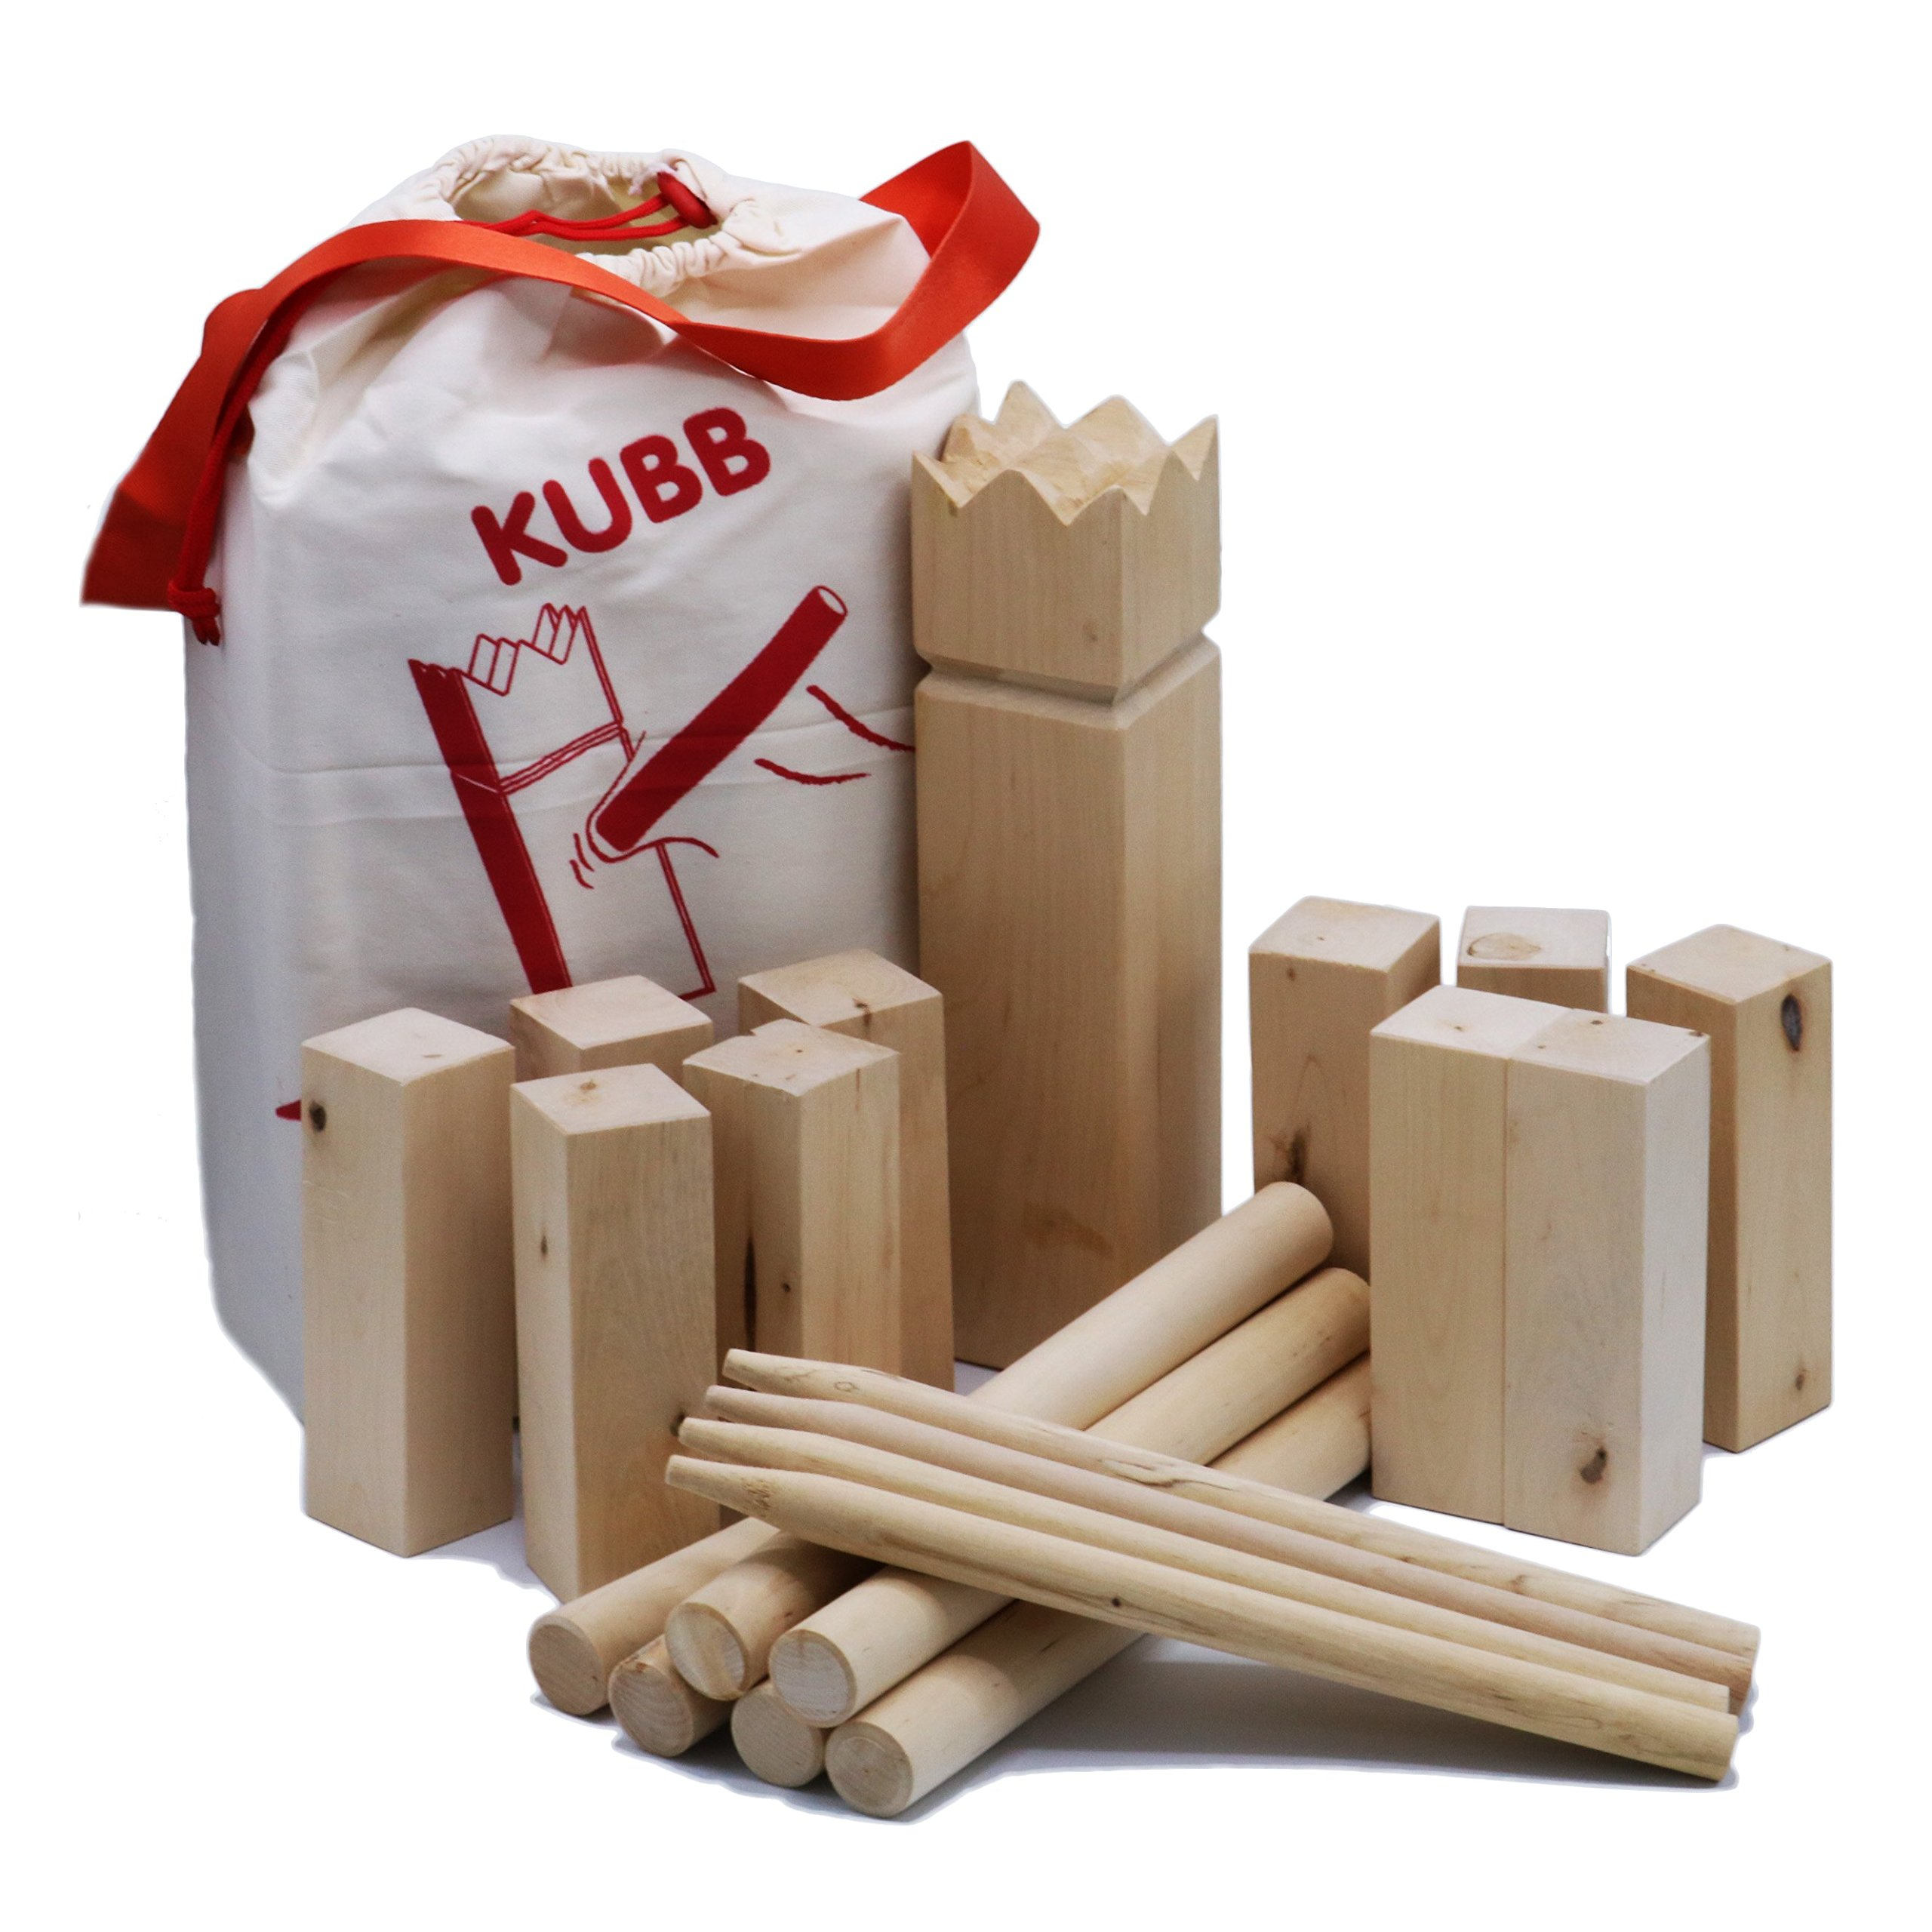 AfterGen Kubb Viking Chess Lawn Game All Wood Back Yard Games Kubb Game Premium Set Beach Games